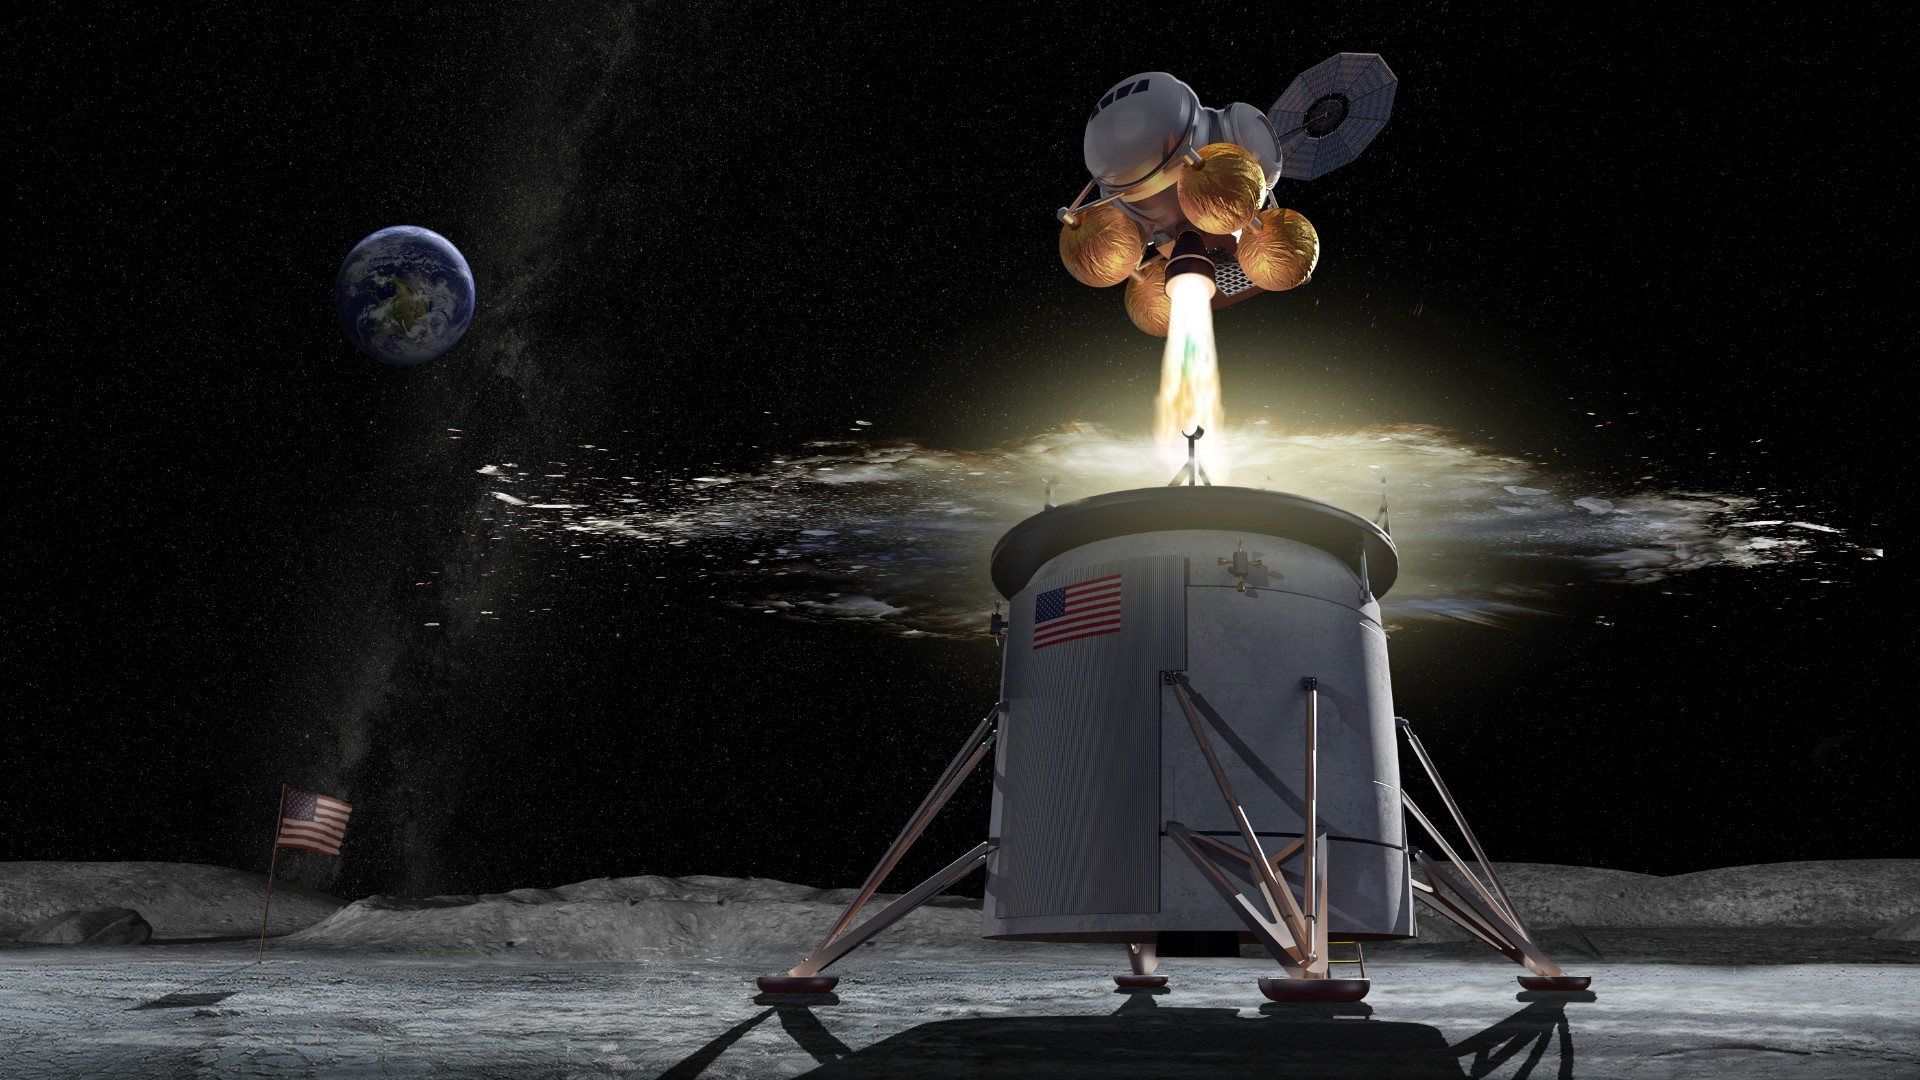 Congress told NASA pressured to overuse commercial launchers on Artemis